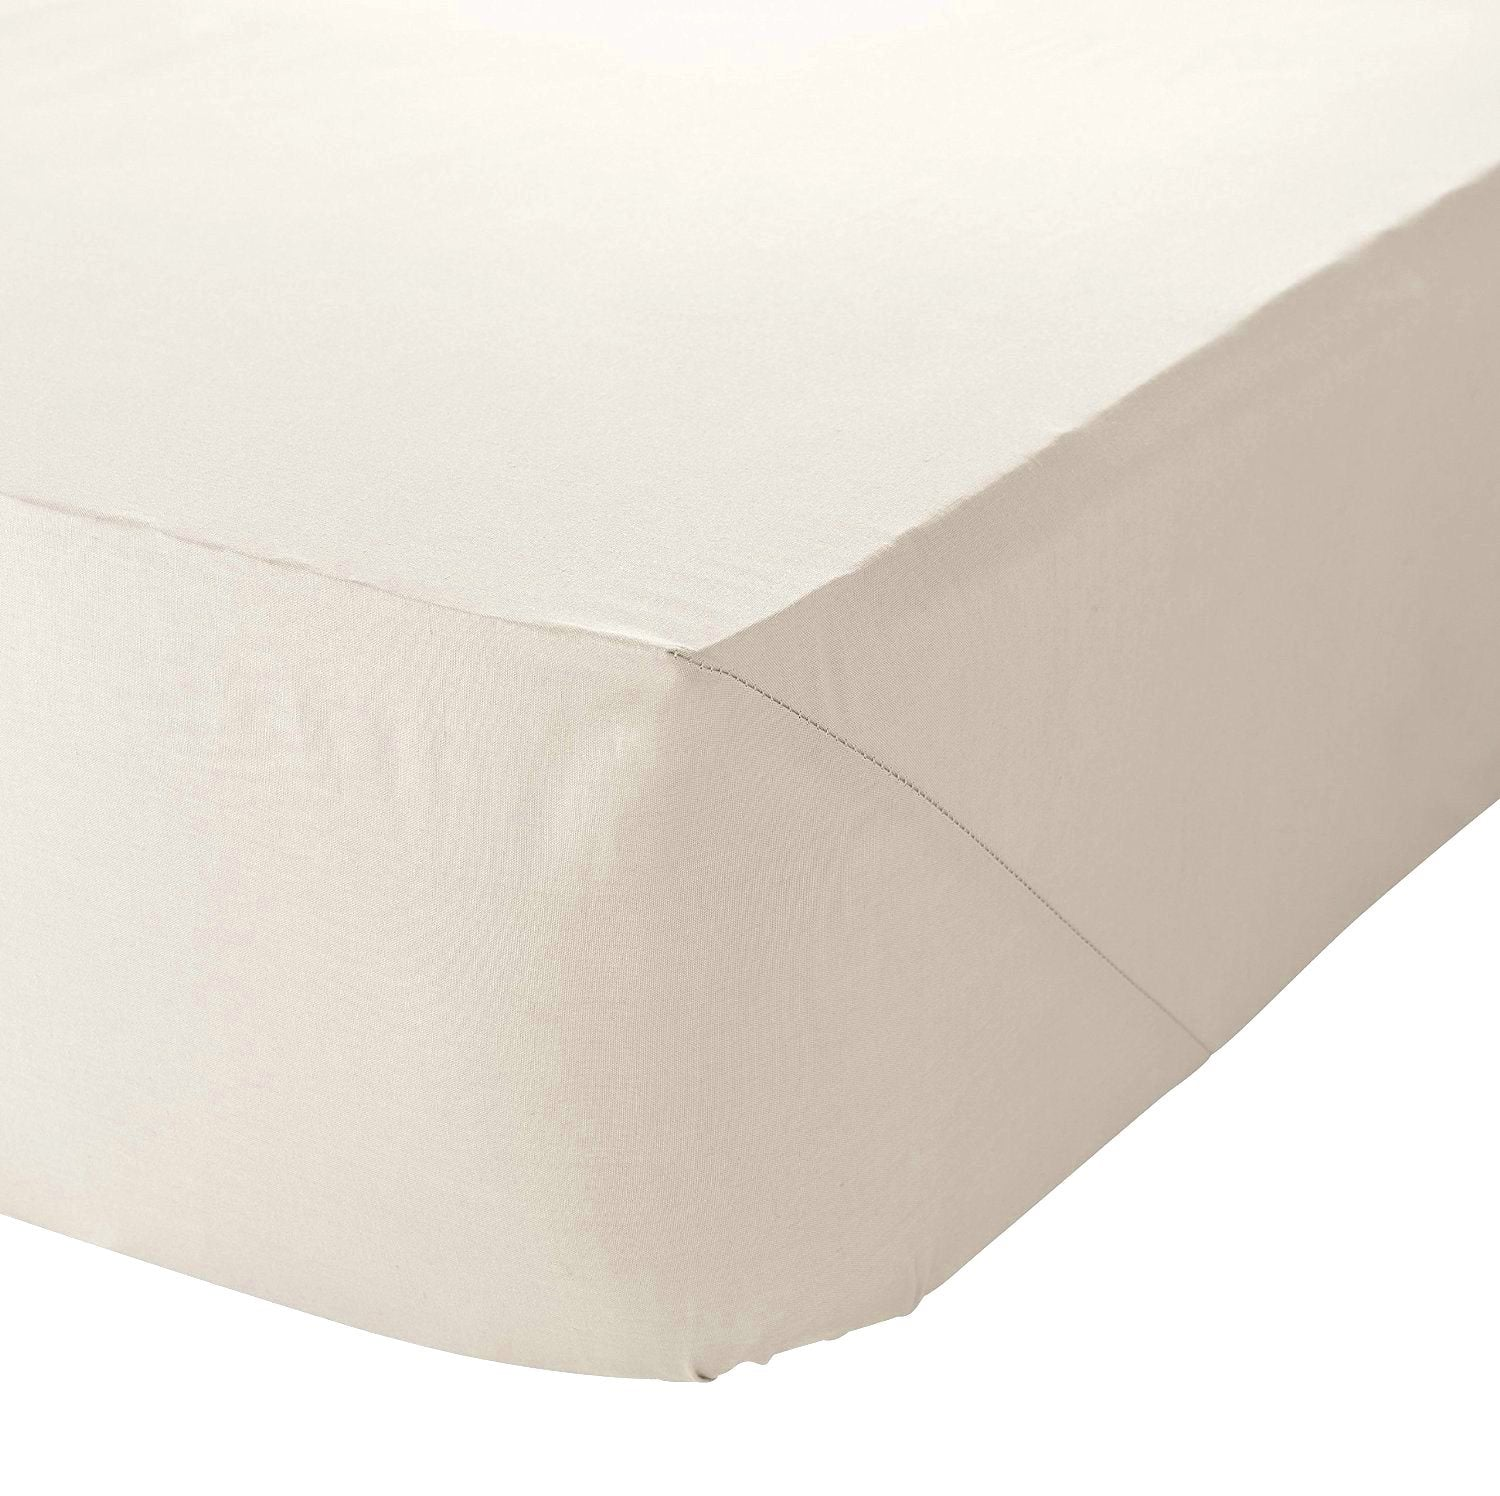 "Electric Bed Size Fitted Sheet Cream 12"" Box 200 Thread Count 3ft x 6ft 6in"